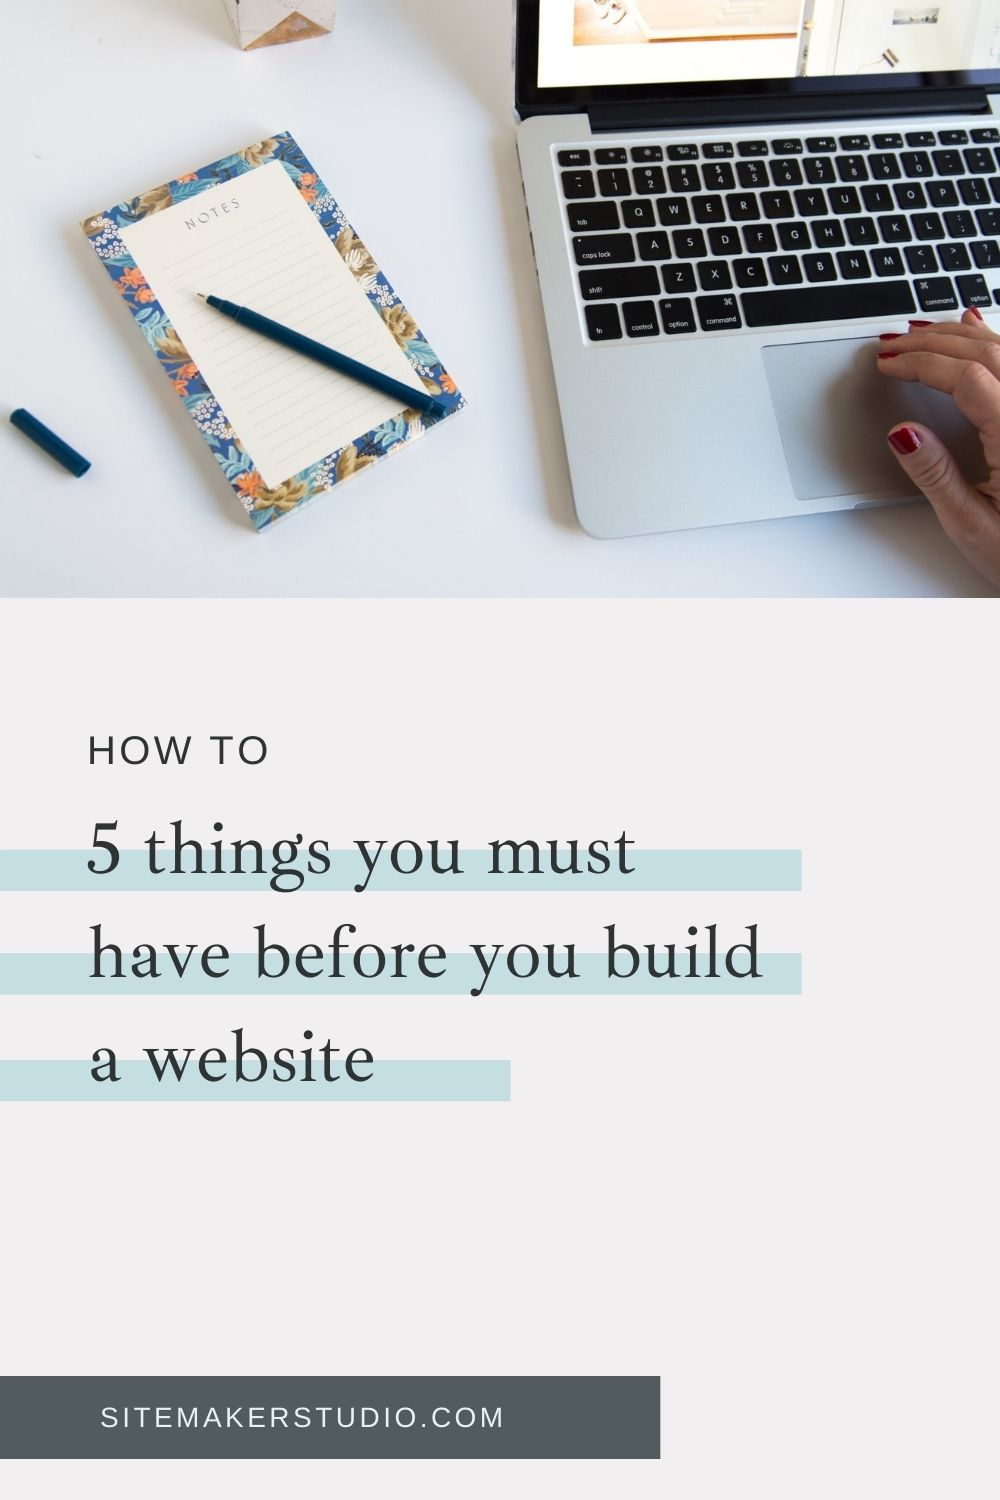 what to have before building a website